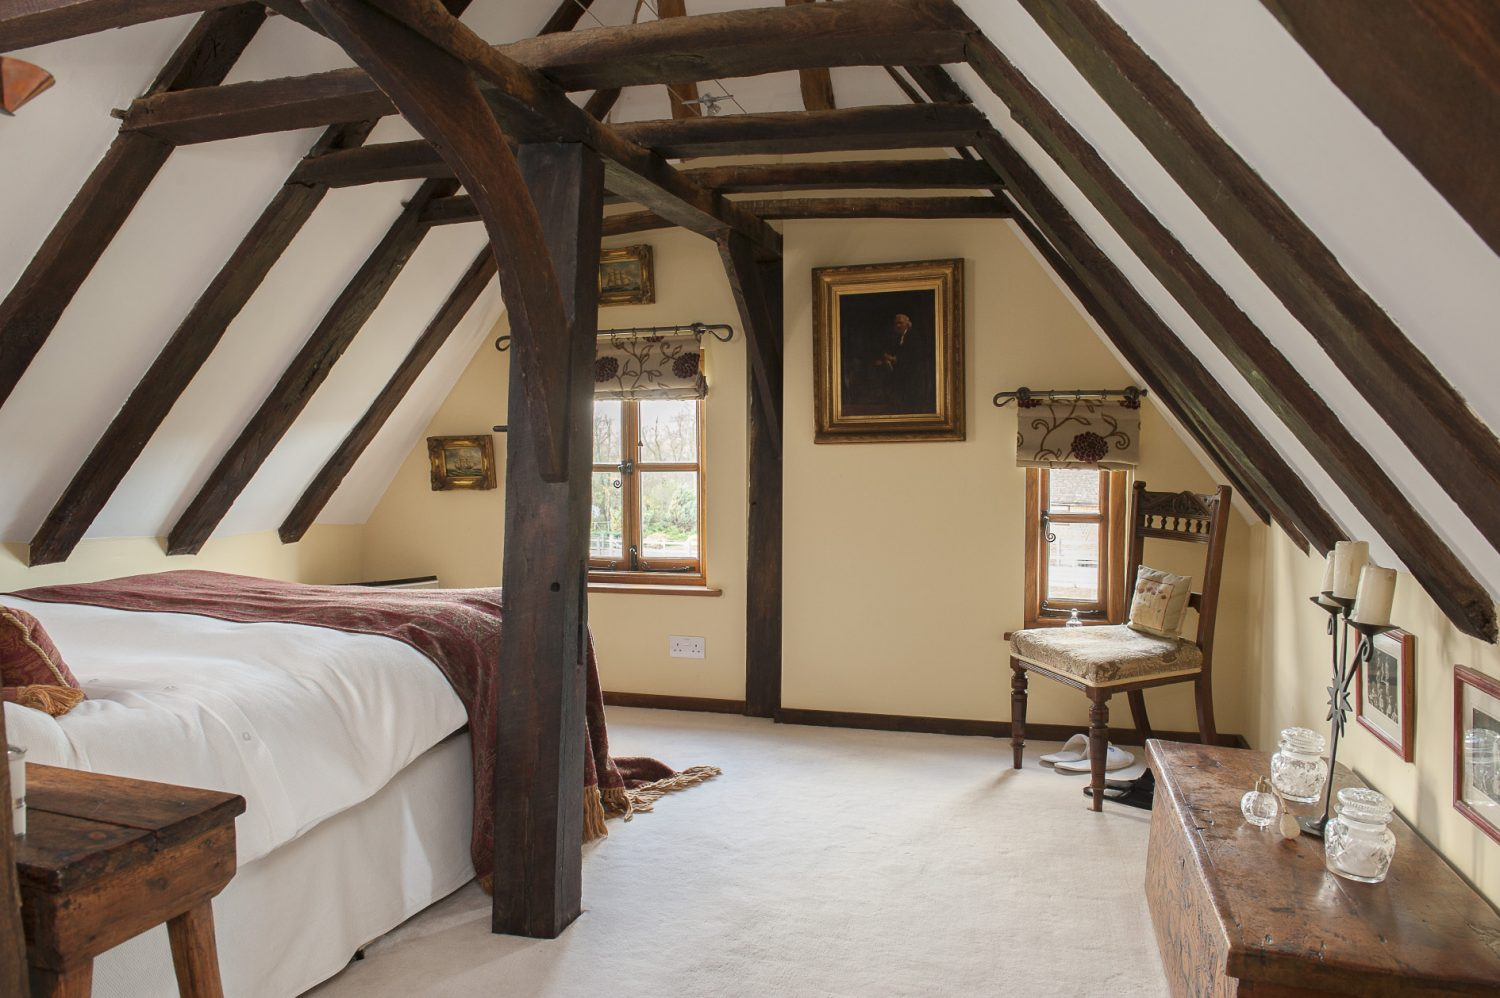 The cosy attic bedroom, with a newly fitted en suite is reached via steep 'paddle stairs', as sometimes seen on yachts